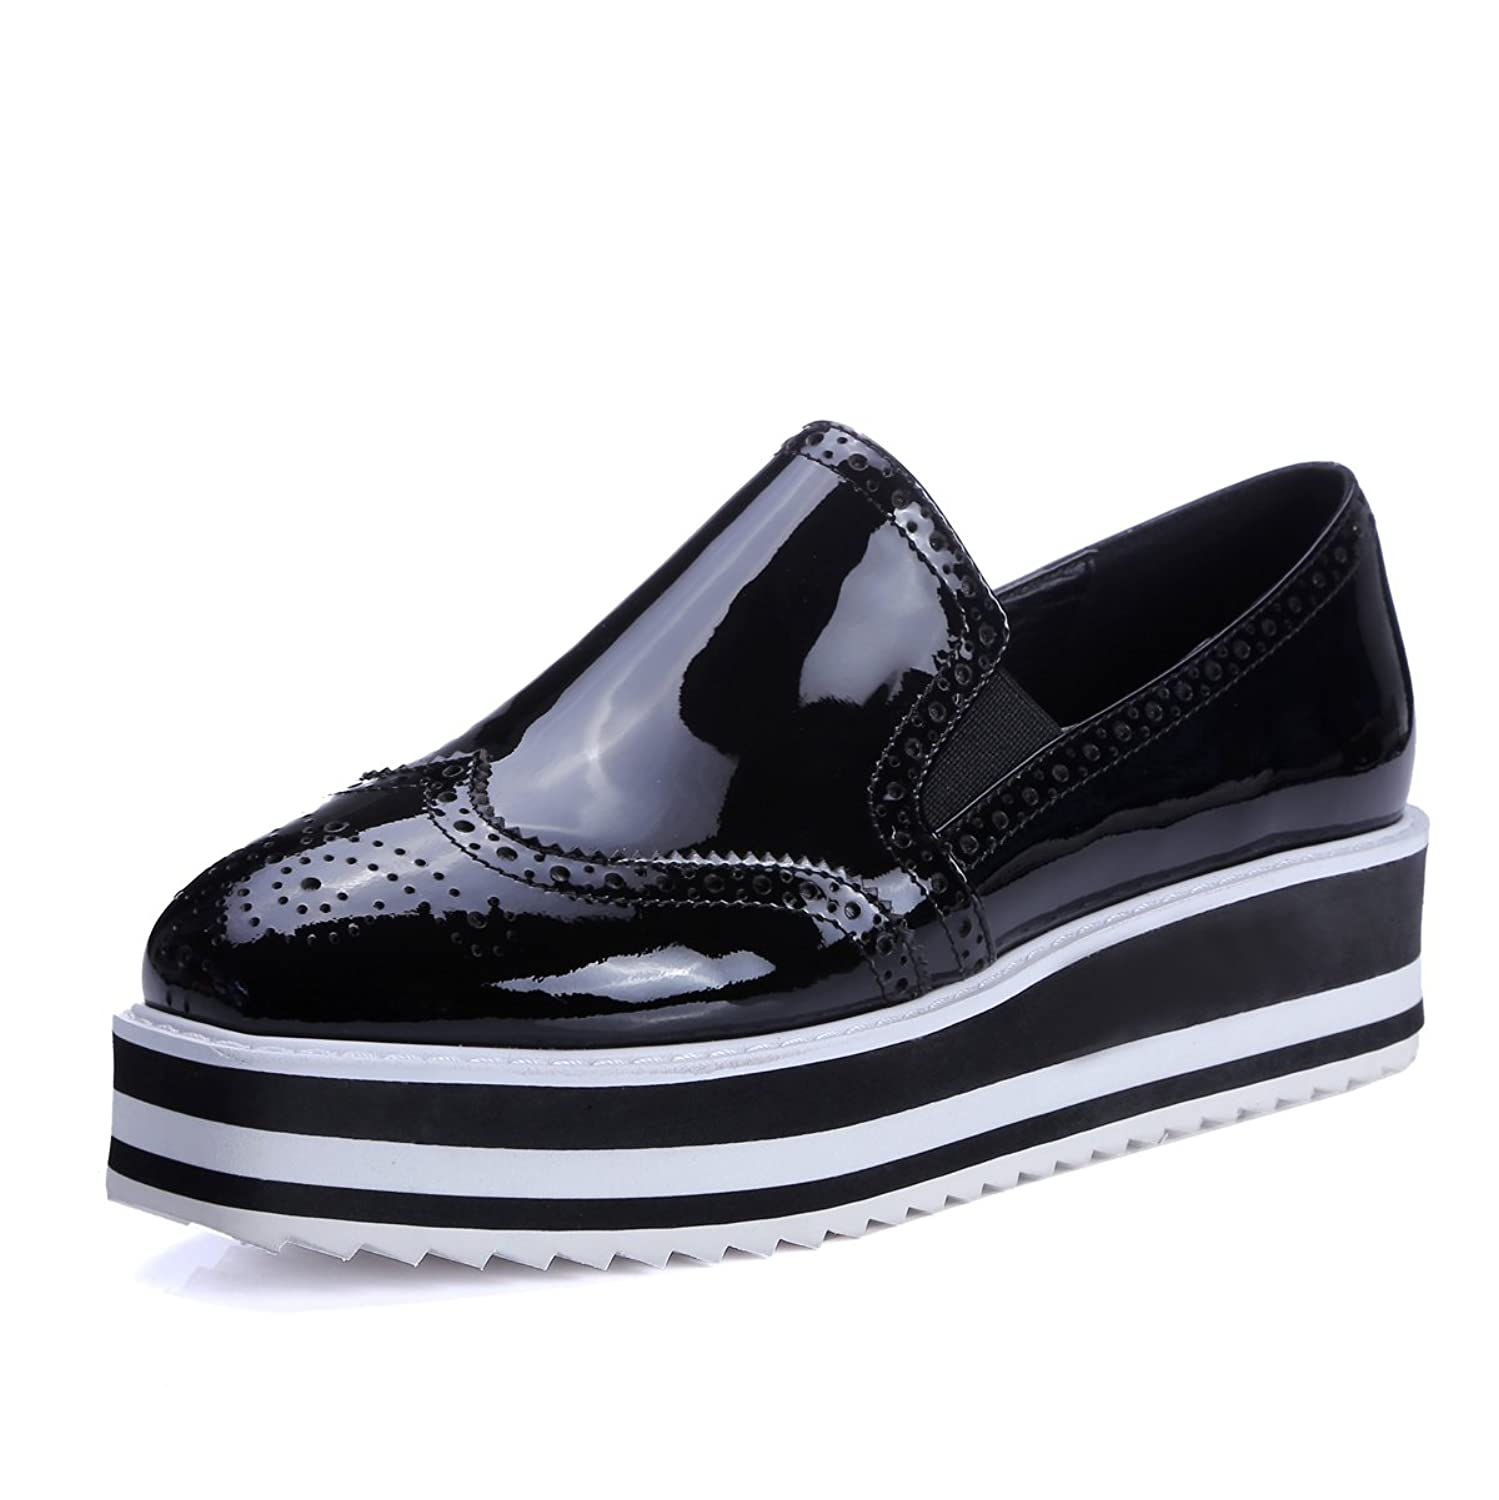 MINIVOG Platform Wingtips Brogue Loafer Shoes